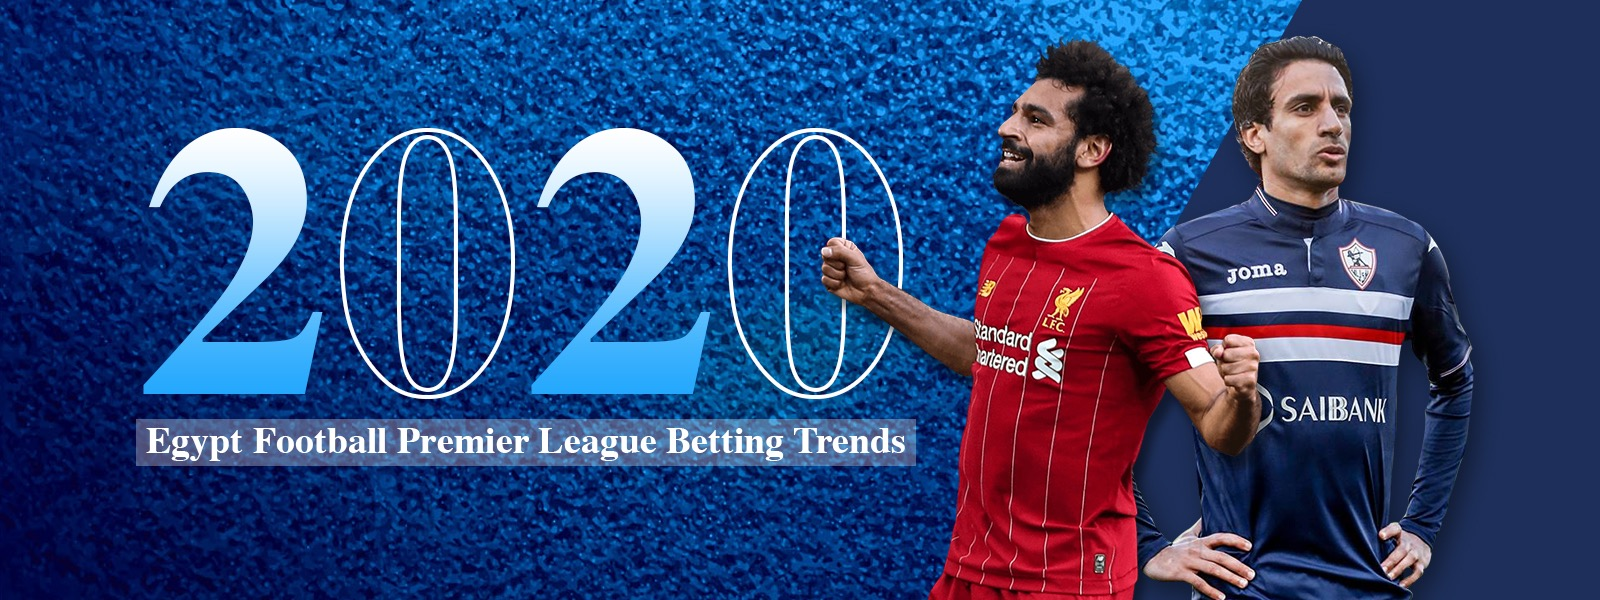 2020 Egypt Football Premier League Betting Trends